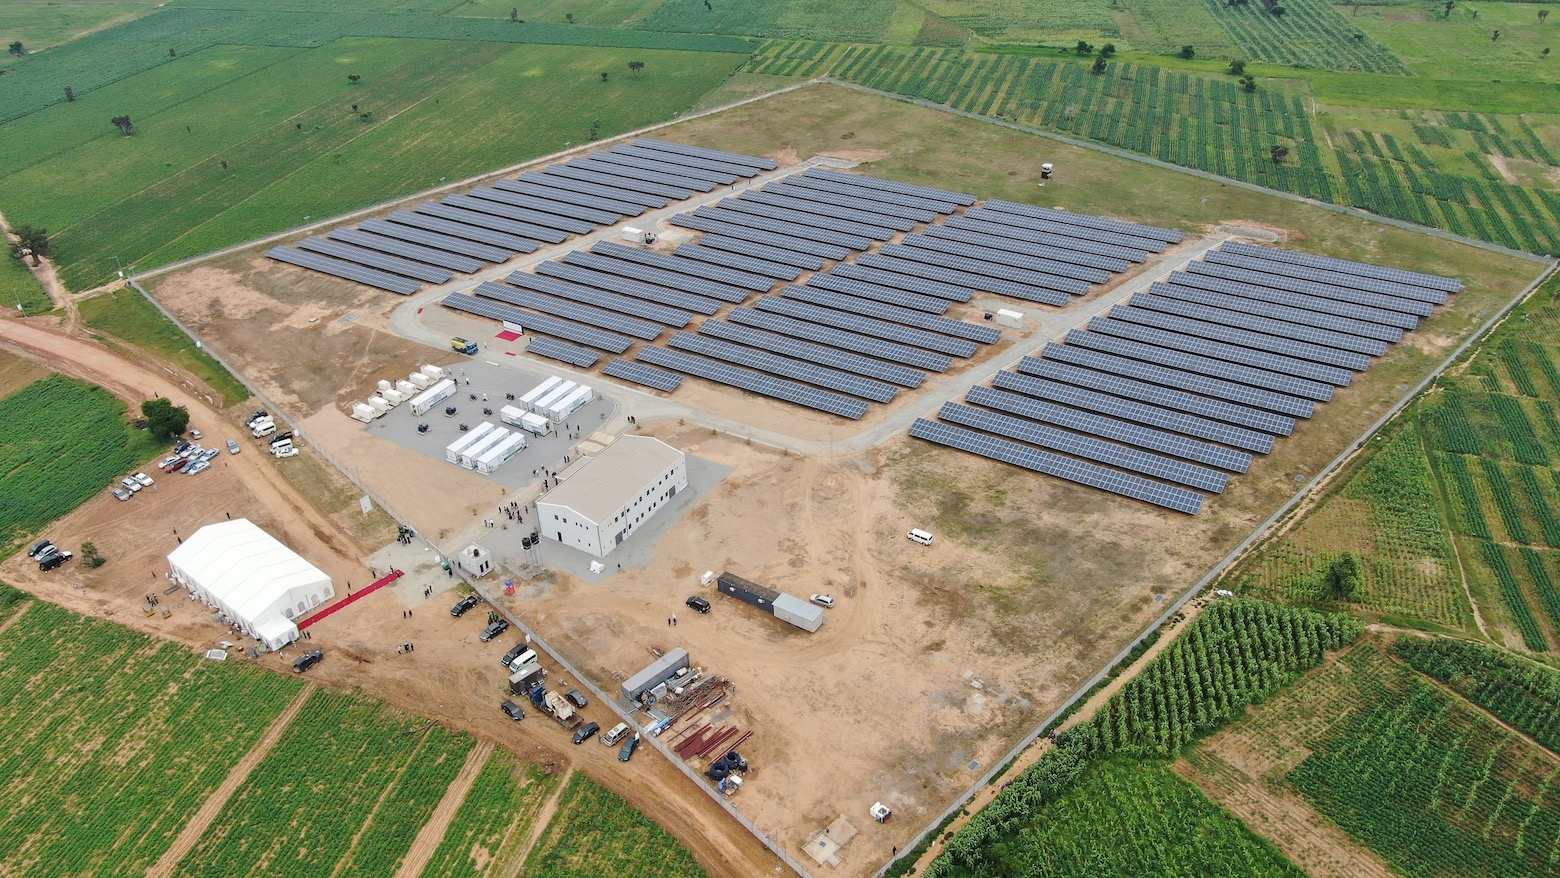 3.5MWp of solar PV, 8.1MWh of battery energy storage and 2.4MW of backup generators will supply more than 55,000 students, 3,000 staff and nearly 3,000 streetlights at BUK. Image: METKA.